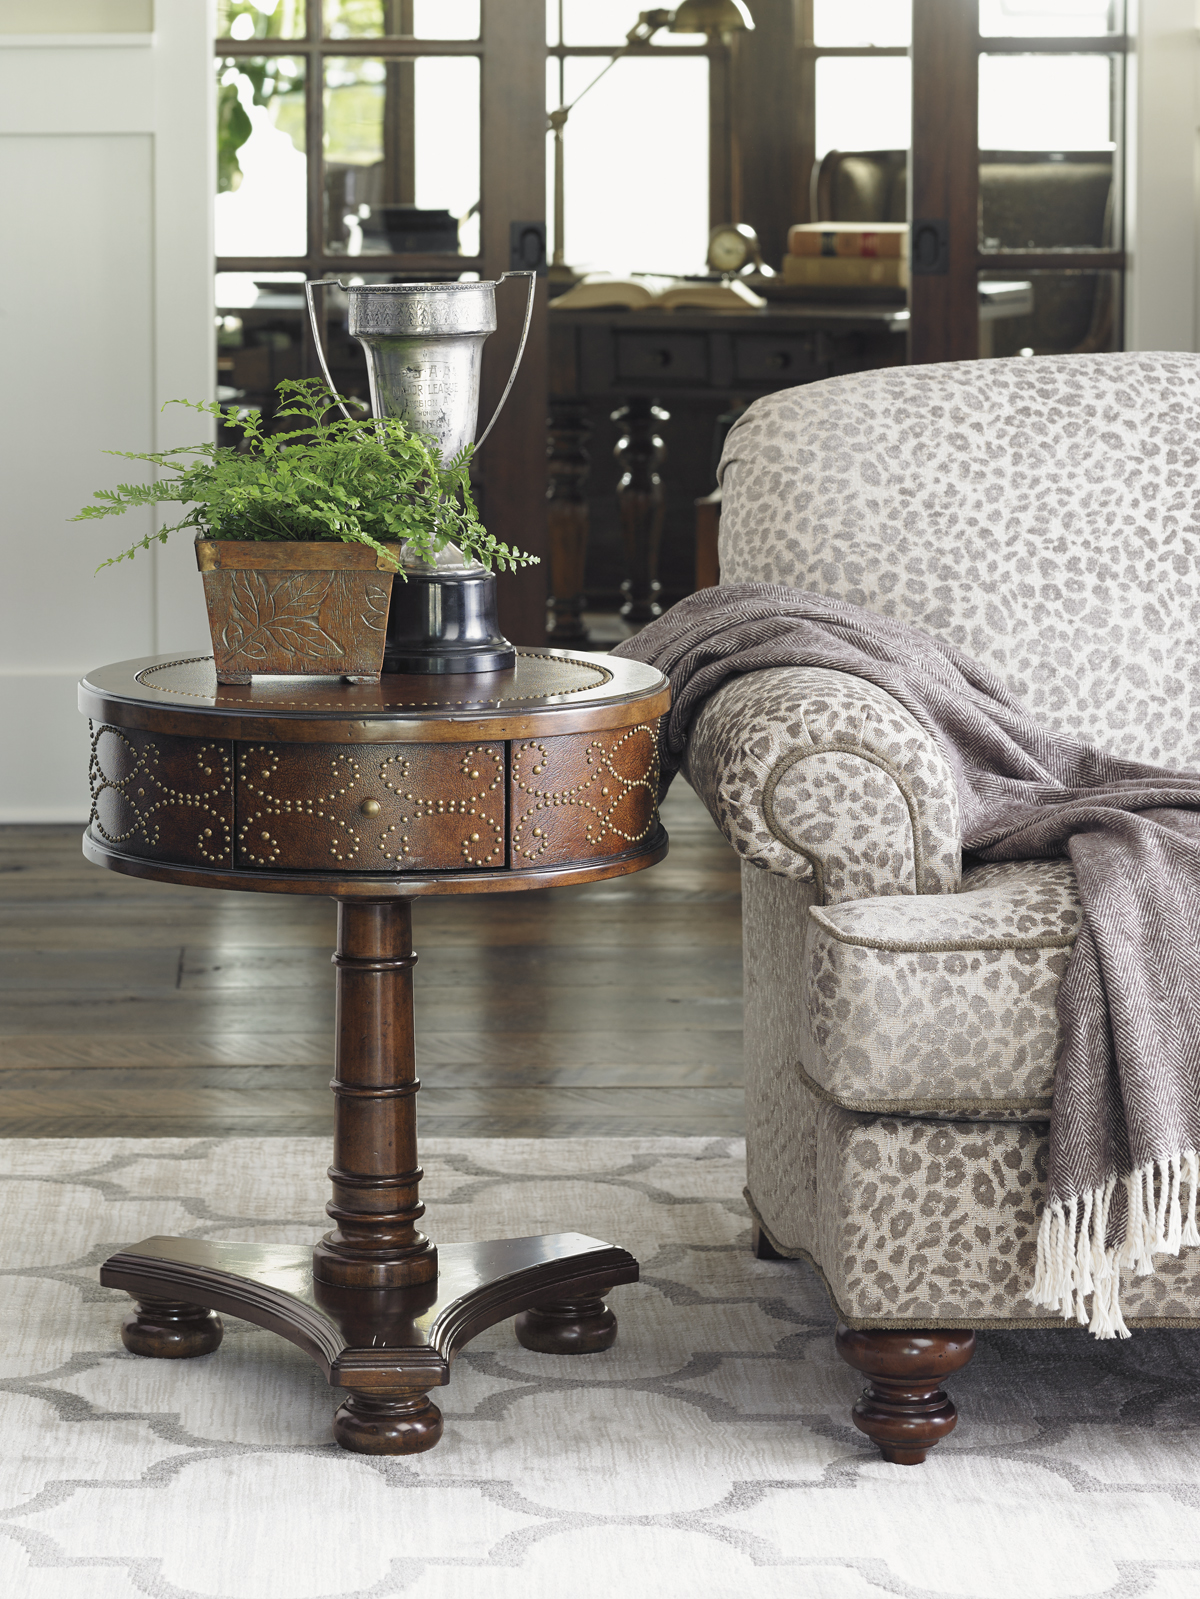 Using Fabrics to Create Style | Lexington Home Brands